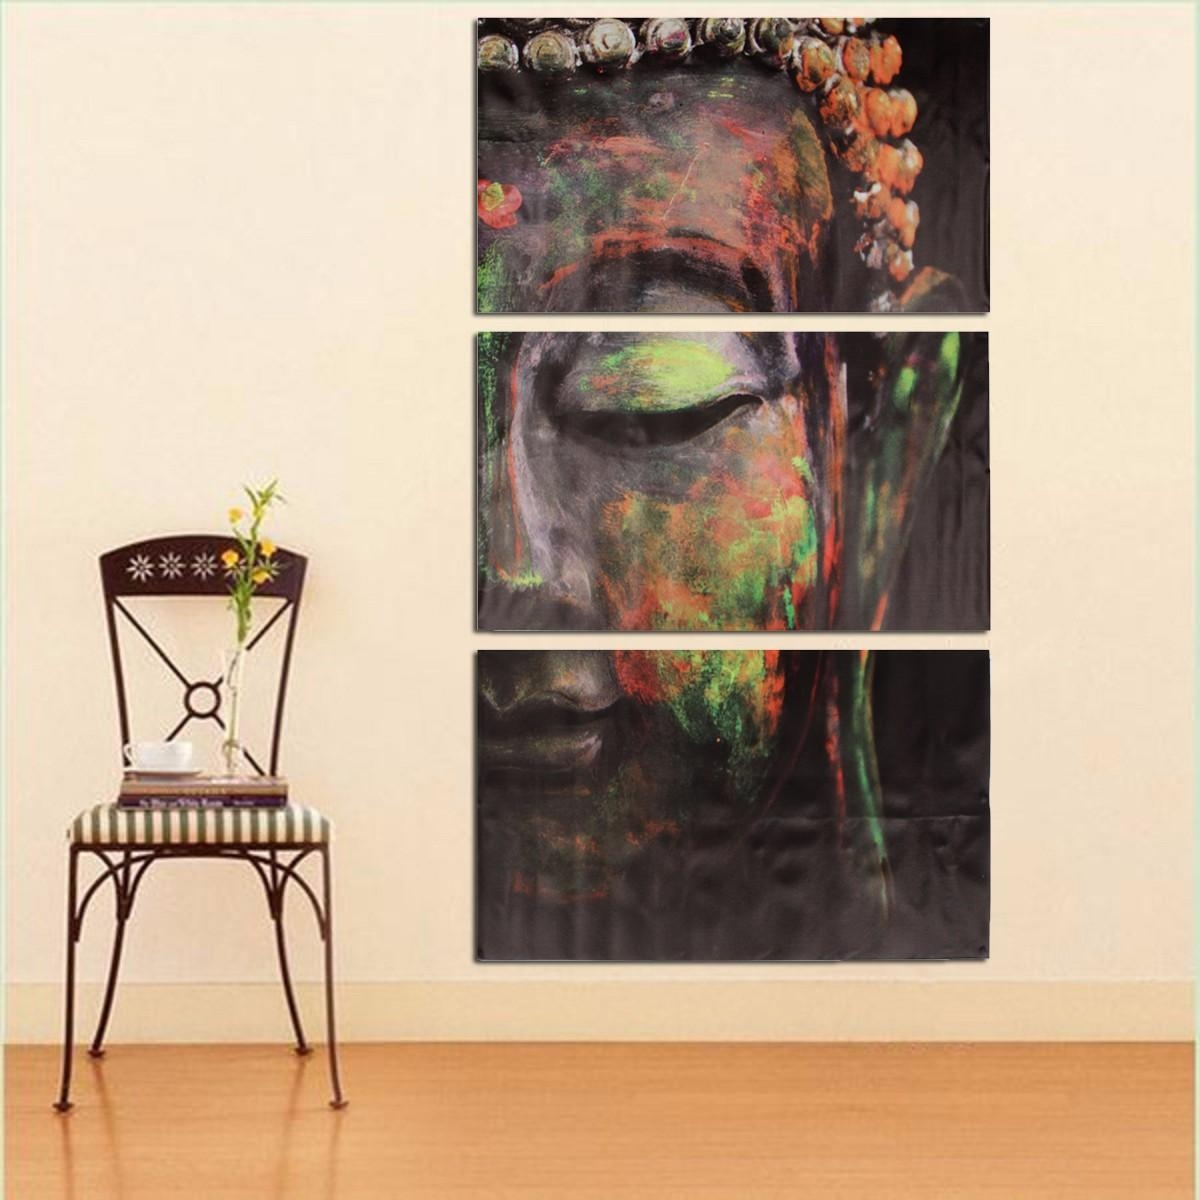 40X60Cm Buddha Statues Triple Frameless Canvas Prints Oil Painting within Oil Painting Wall Art on Canvas